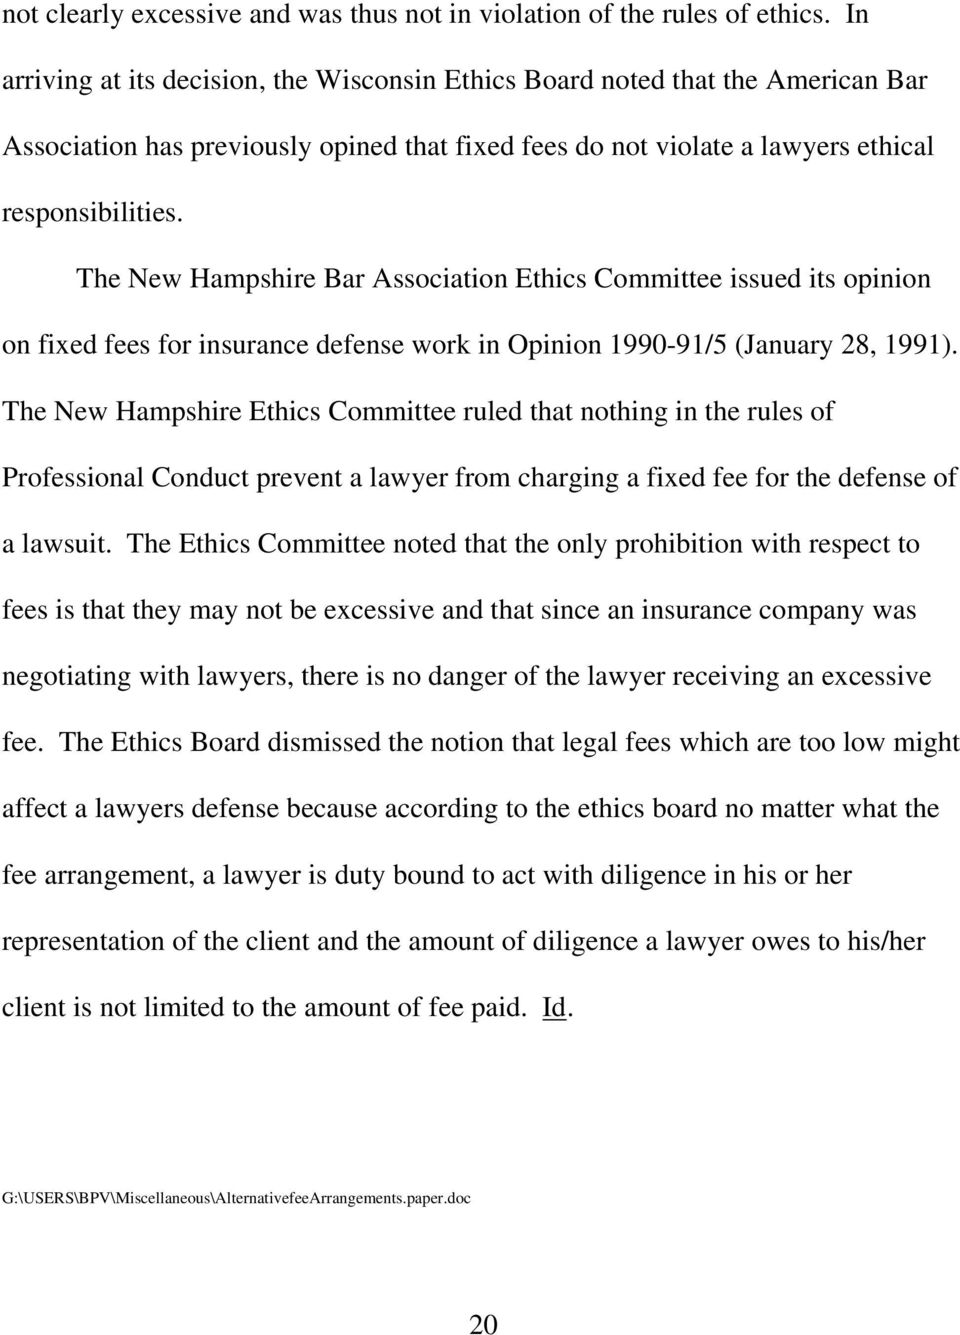 The New Hampshire Bar Association Ethics Committee issued its opinion on fixed fees for insurance defense work in Opinion 1990-91/5 (January 28, 1991).